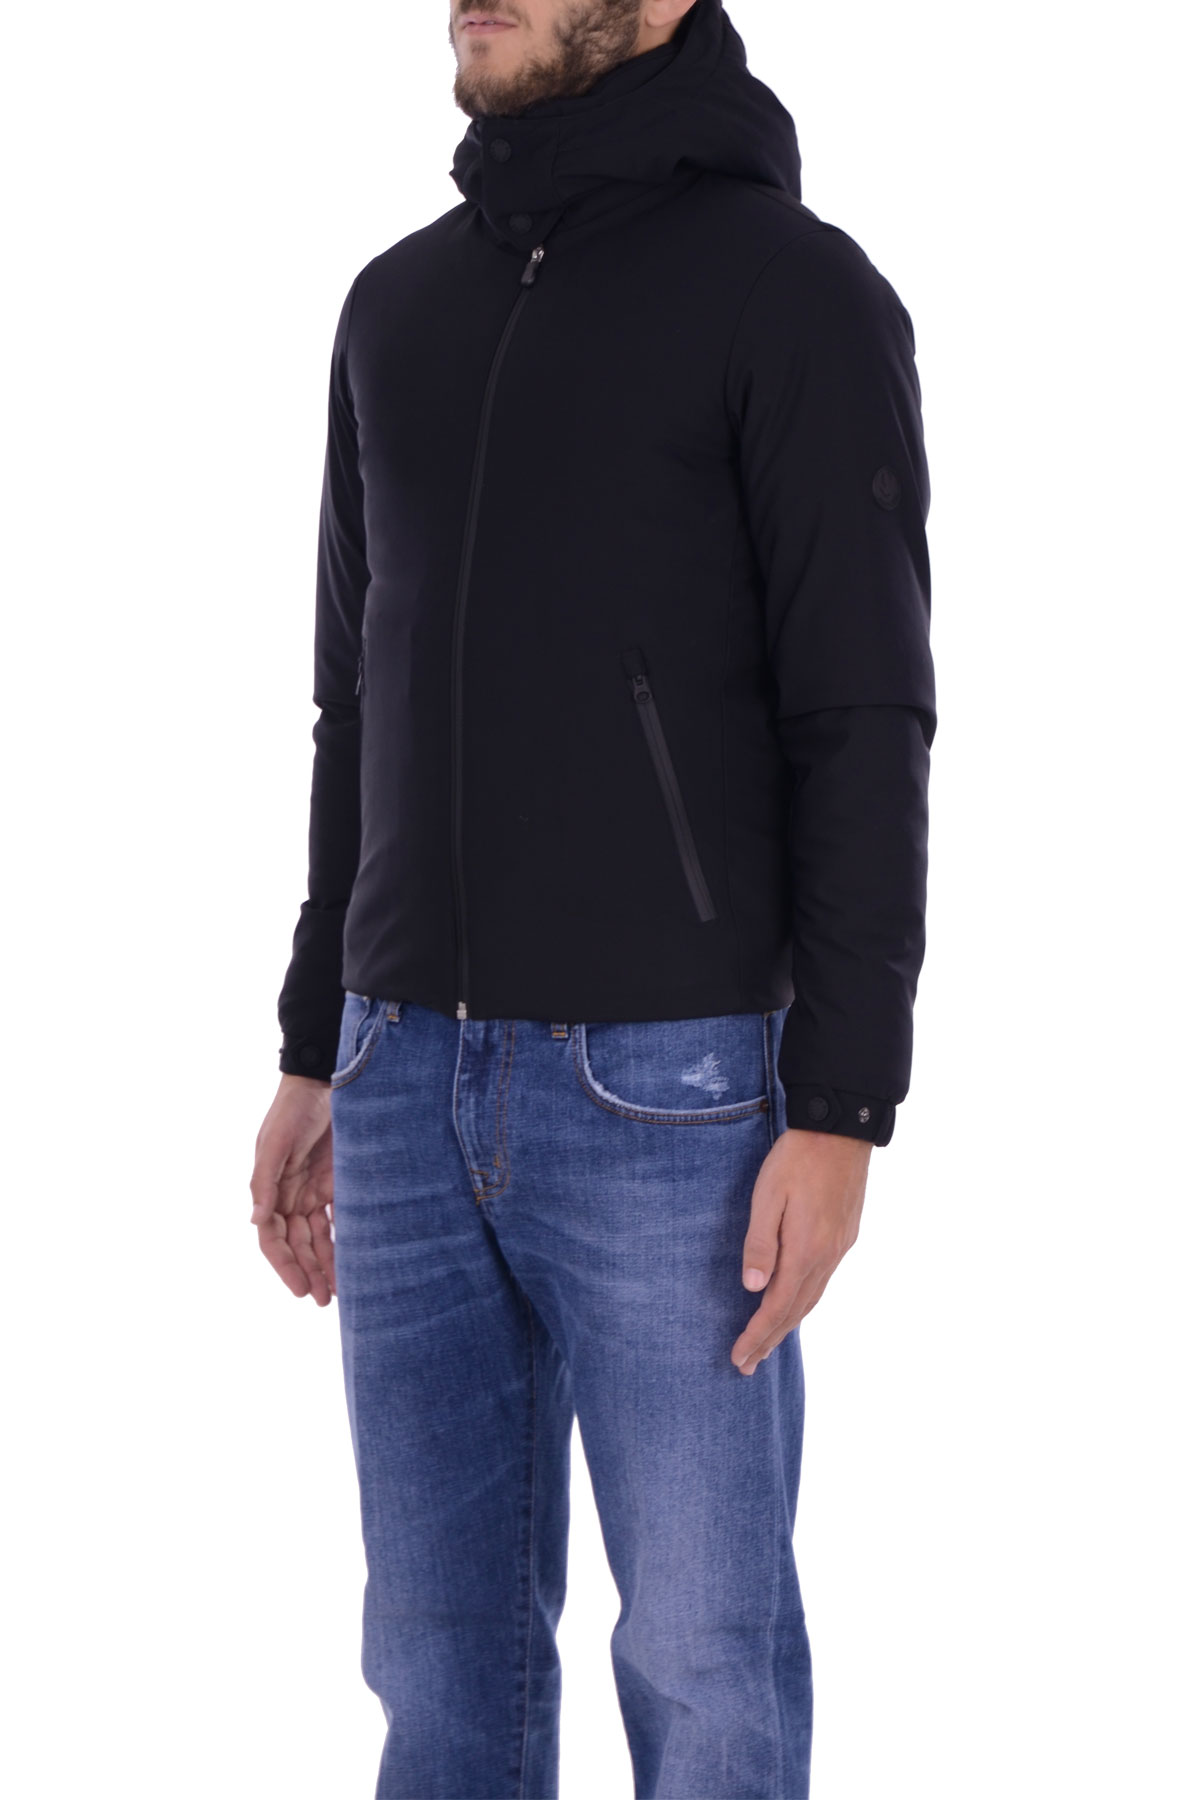 buy popular 619b0 4888c PUNCHED JACKET